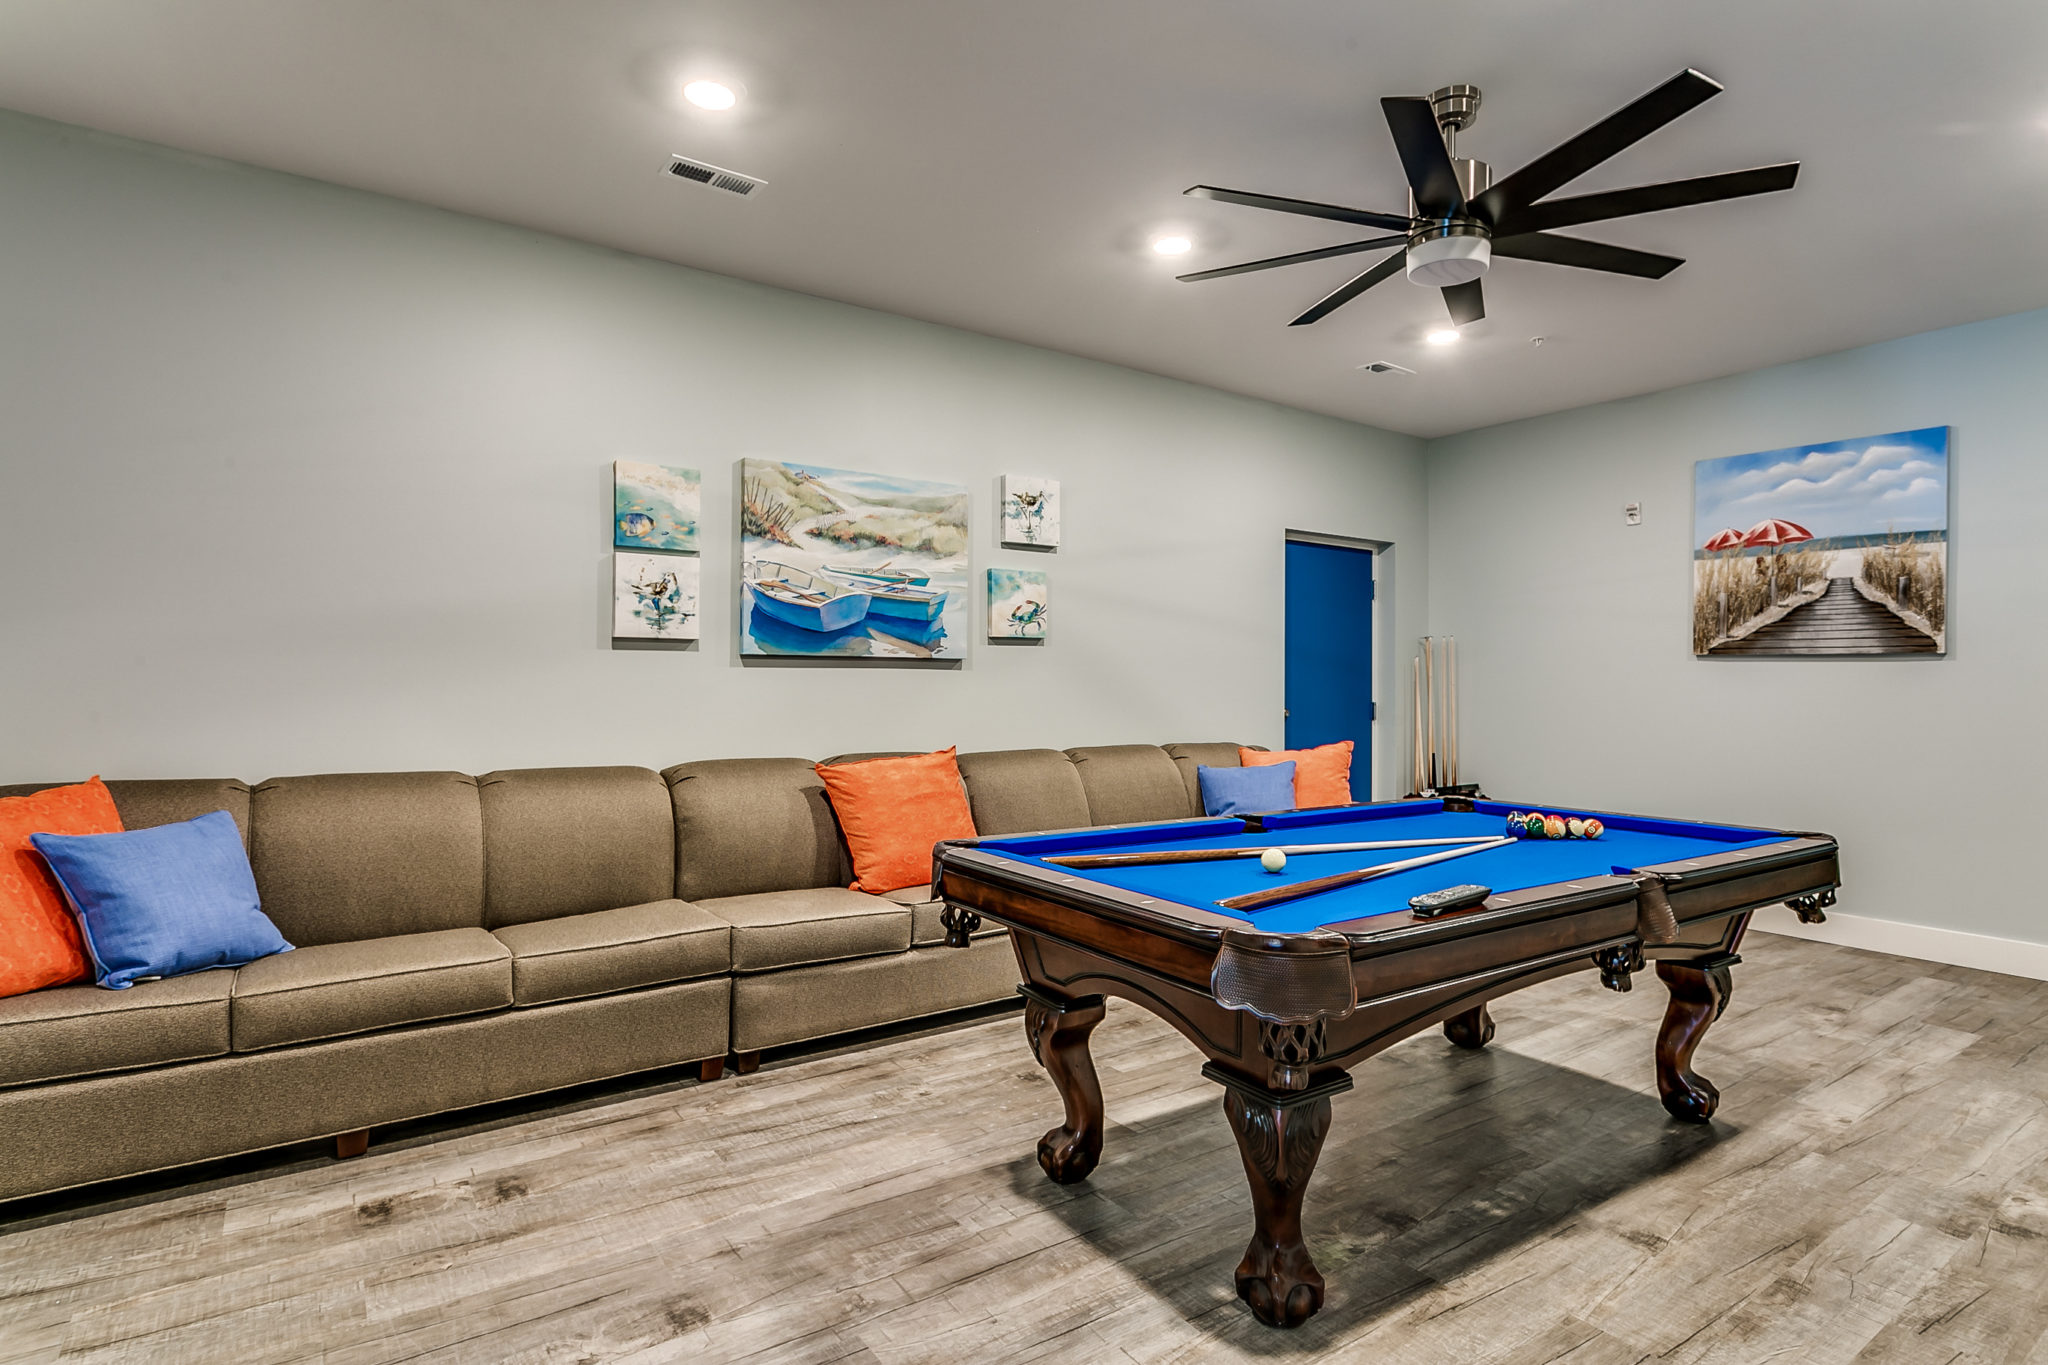 5401 Unit A game room pool table.